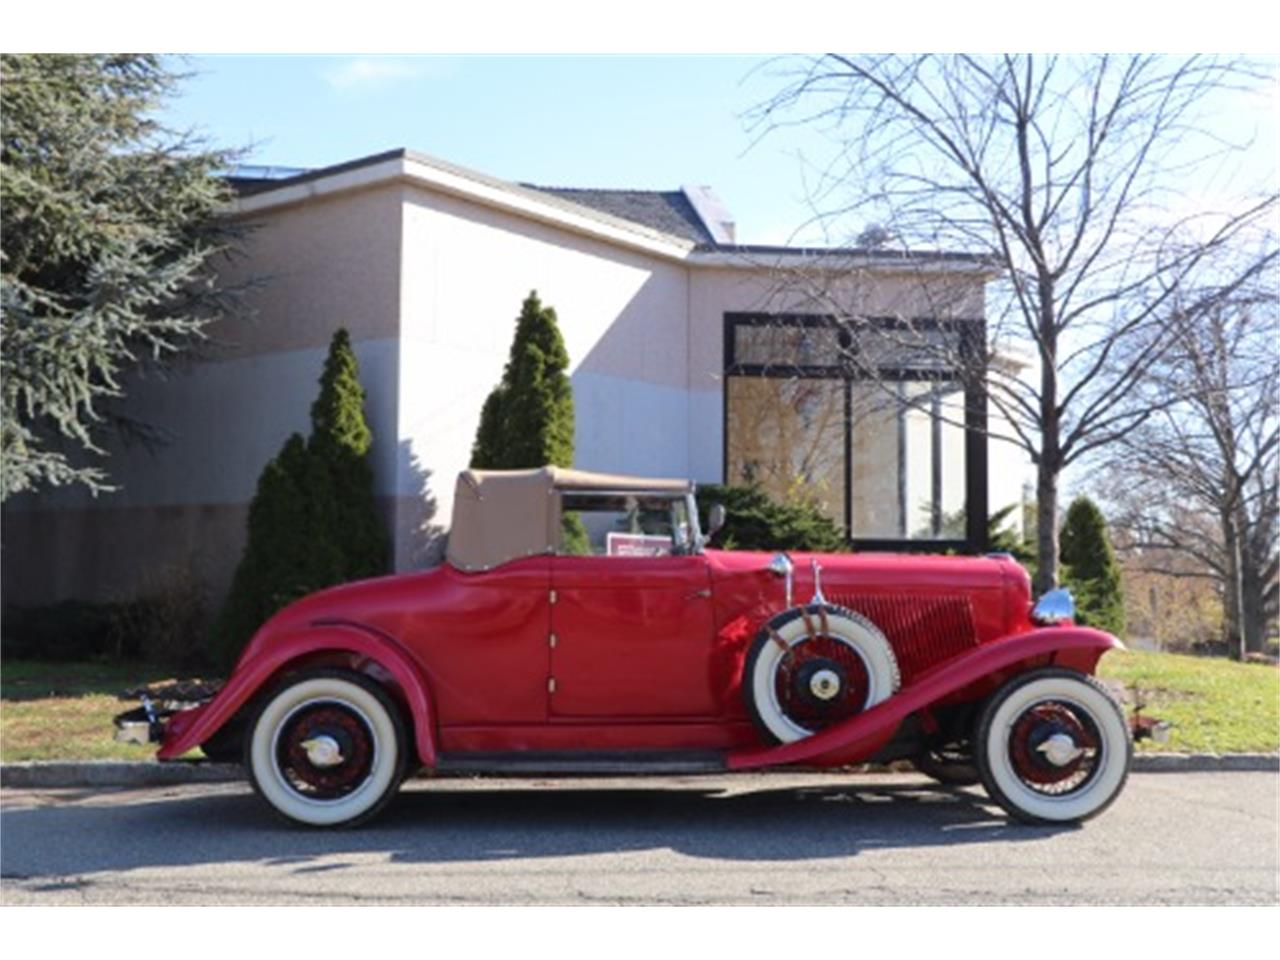 Large Picture of '31 Auburn 8-98A located in Astoria New York - $87,500.00 - JWLH